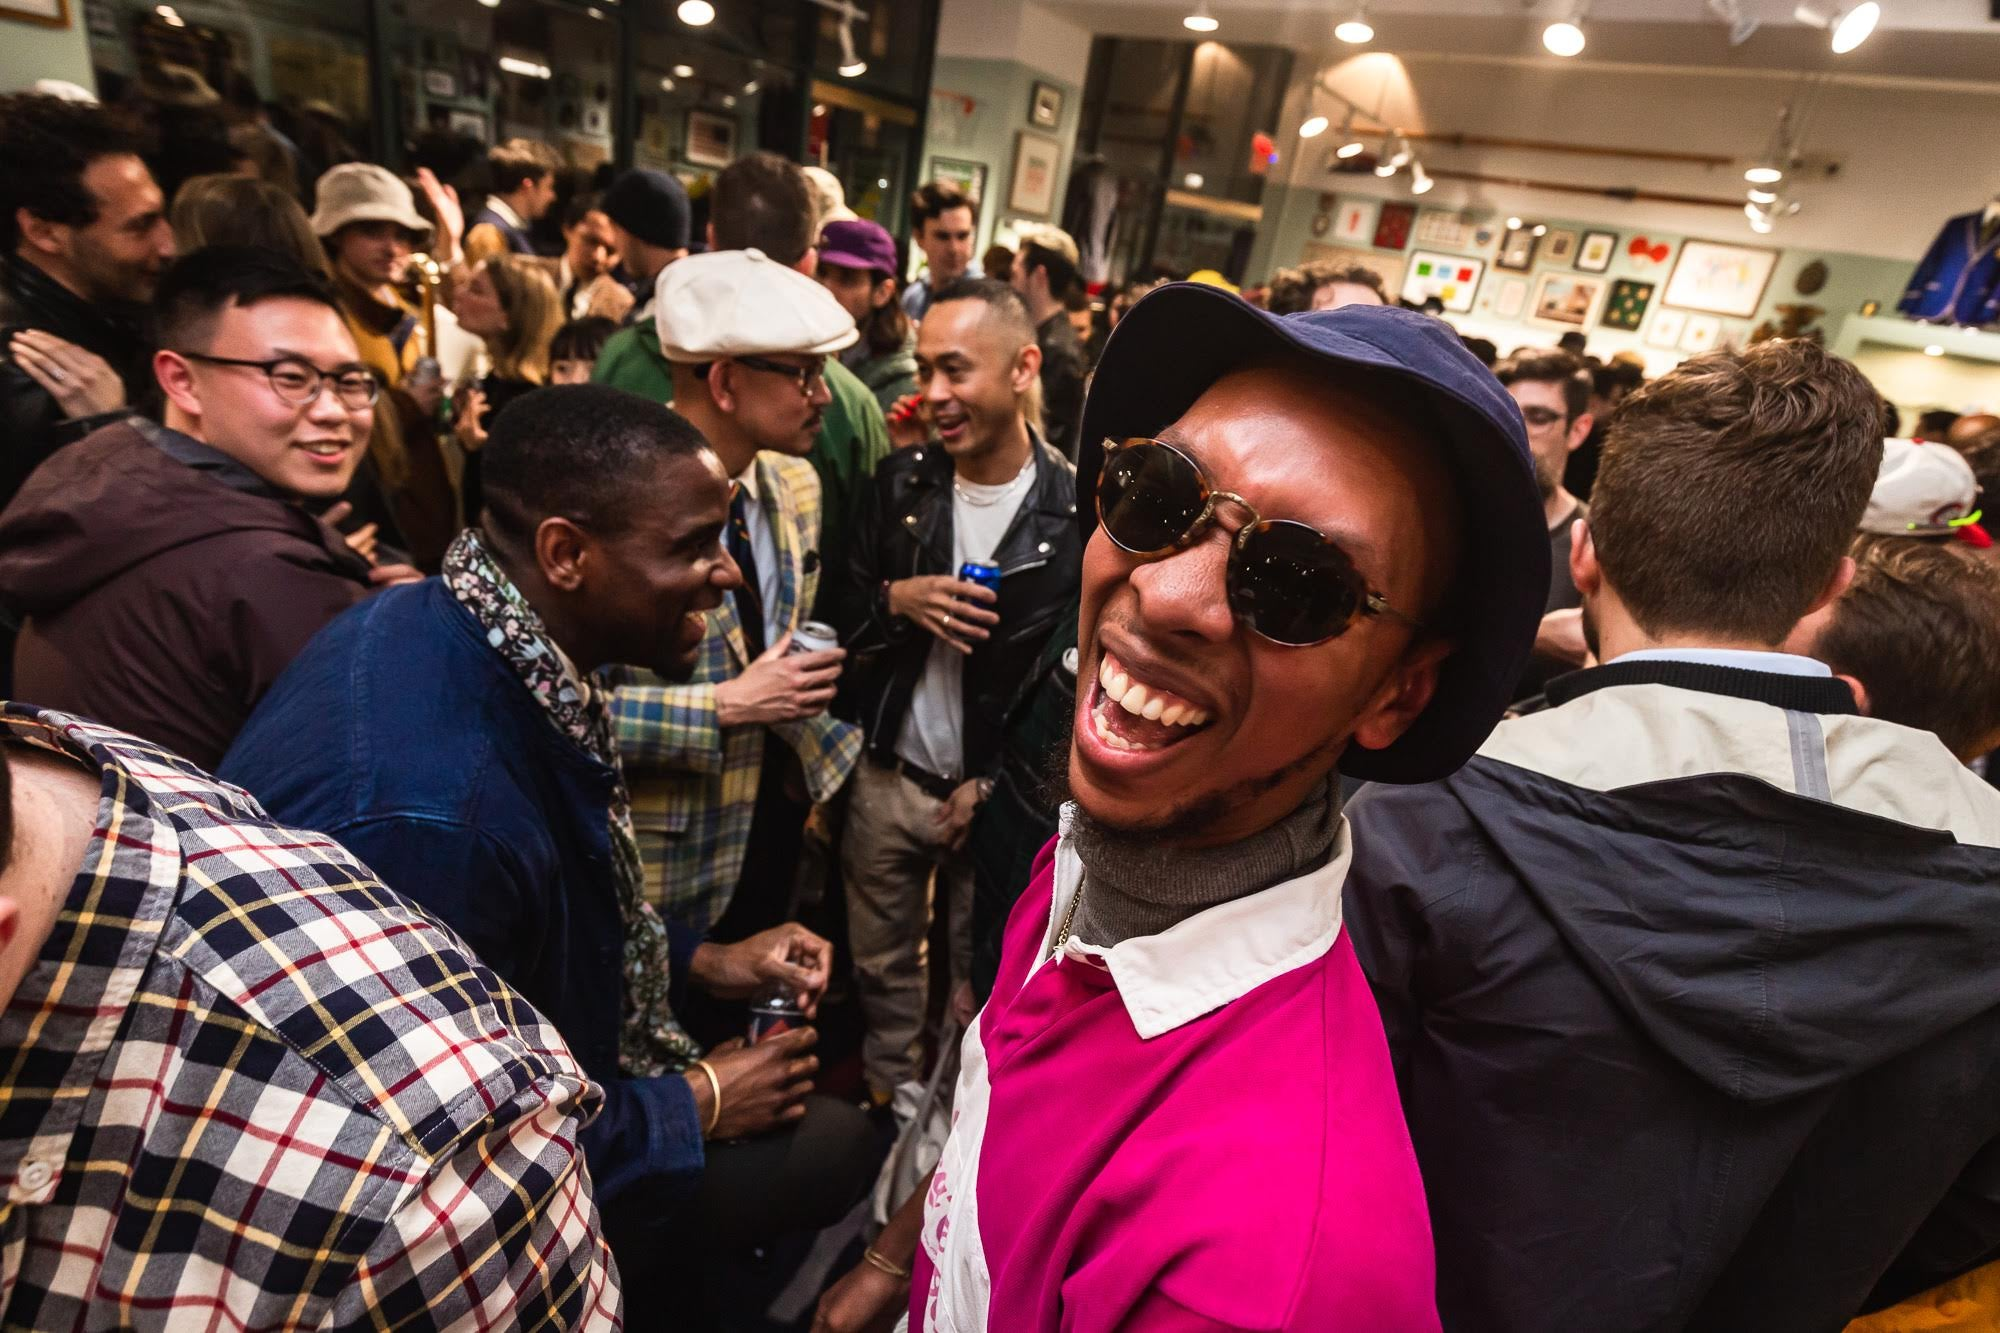 People partying at the Rowing Blazers Store on Grand Street